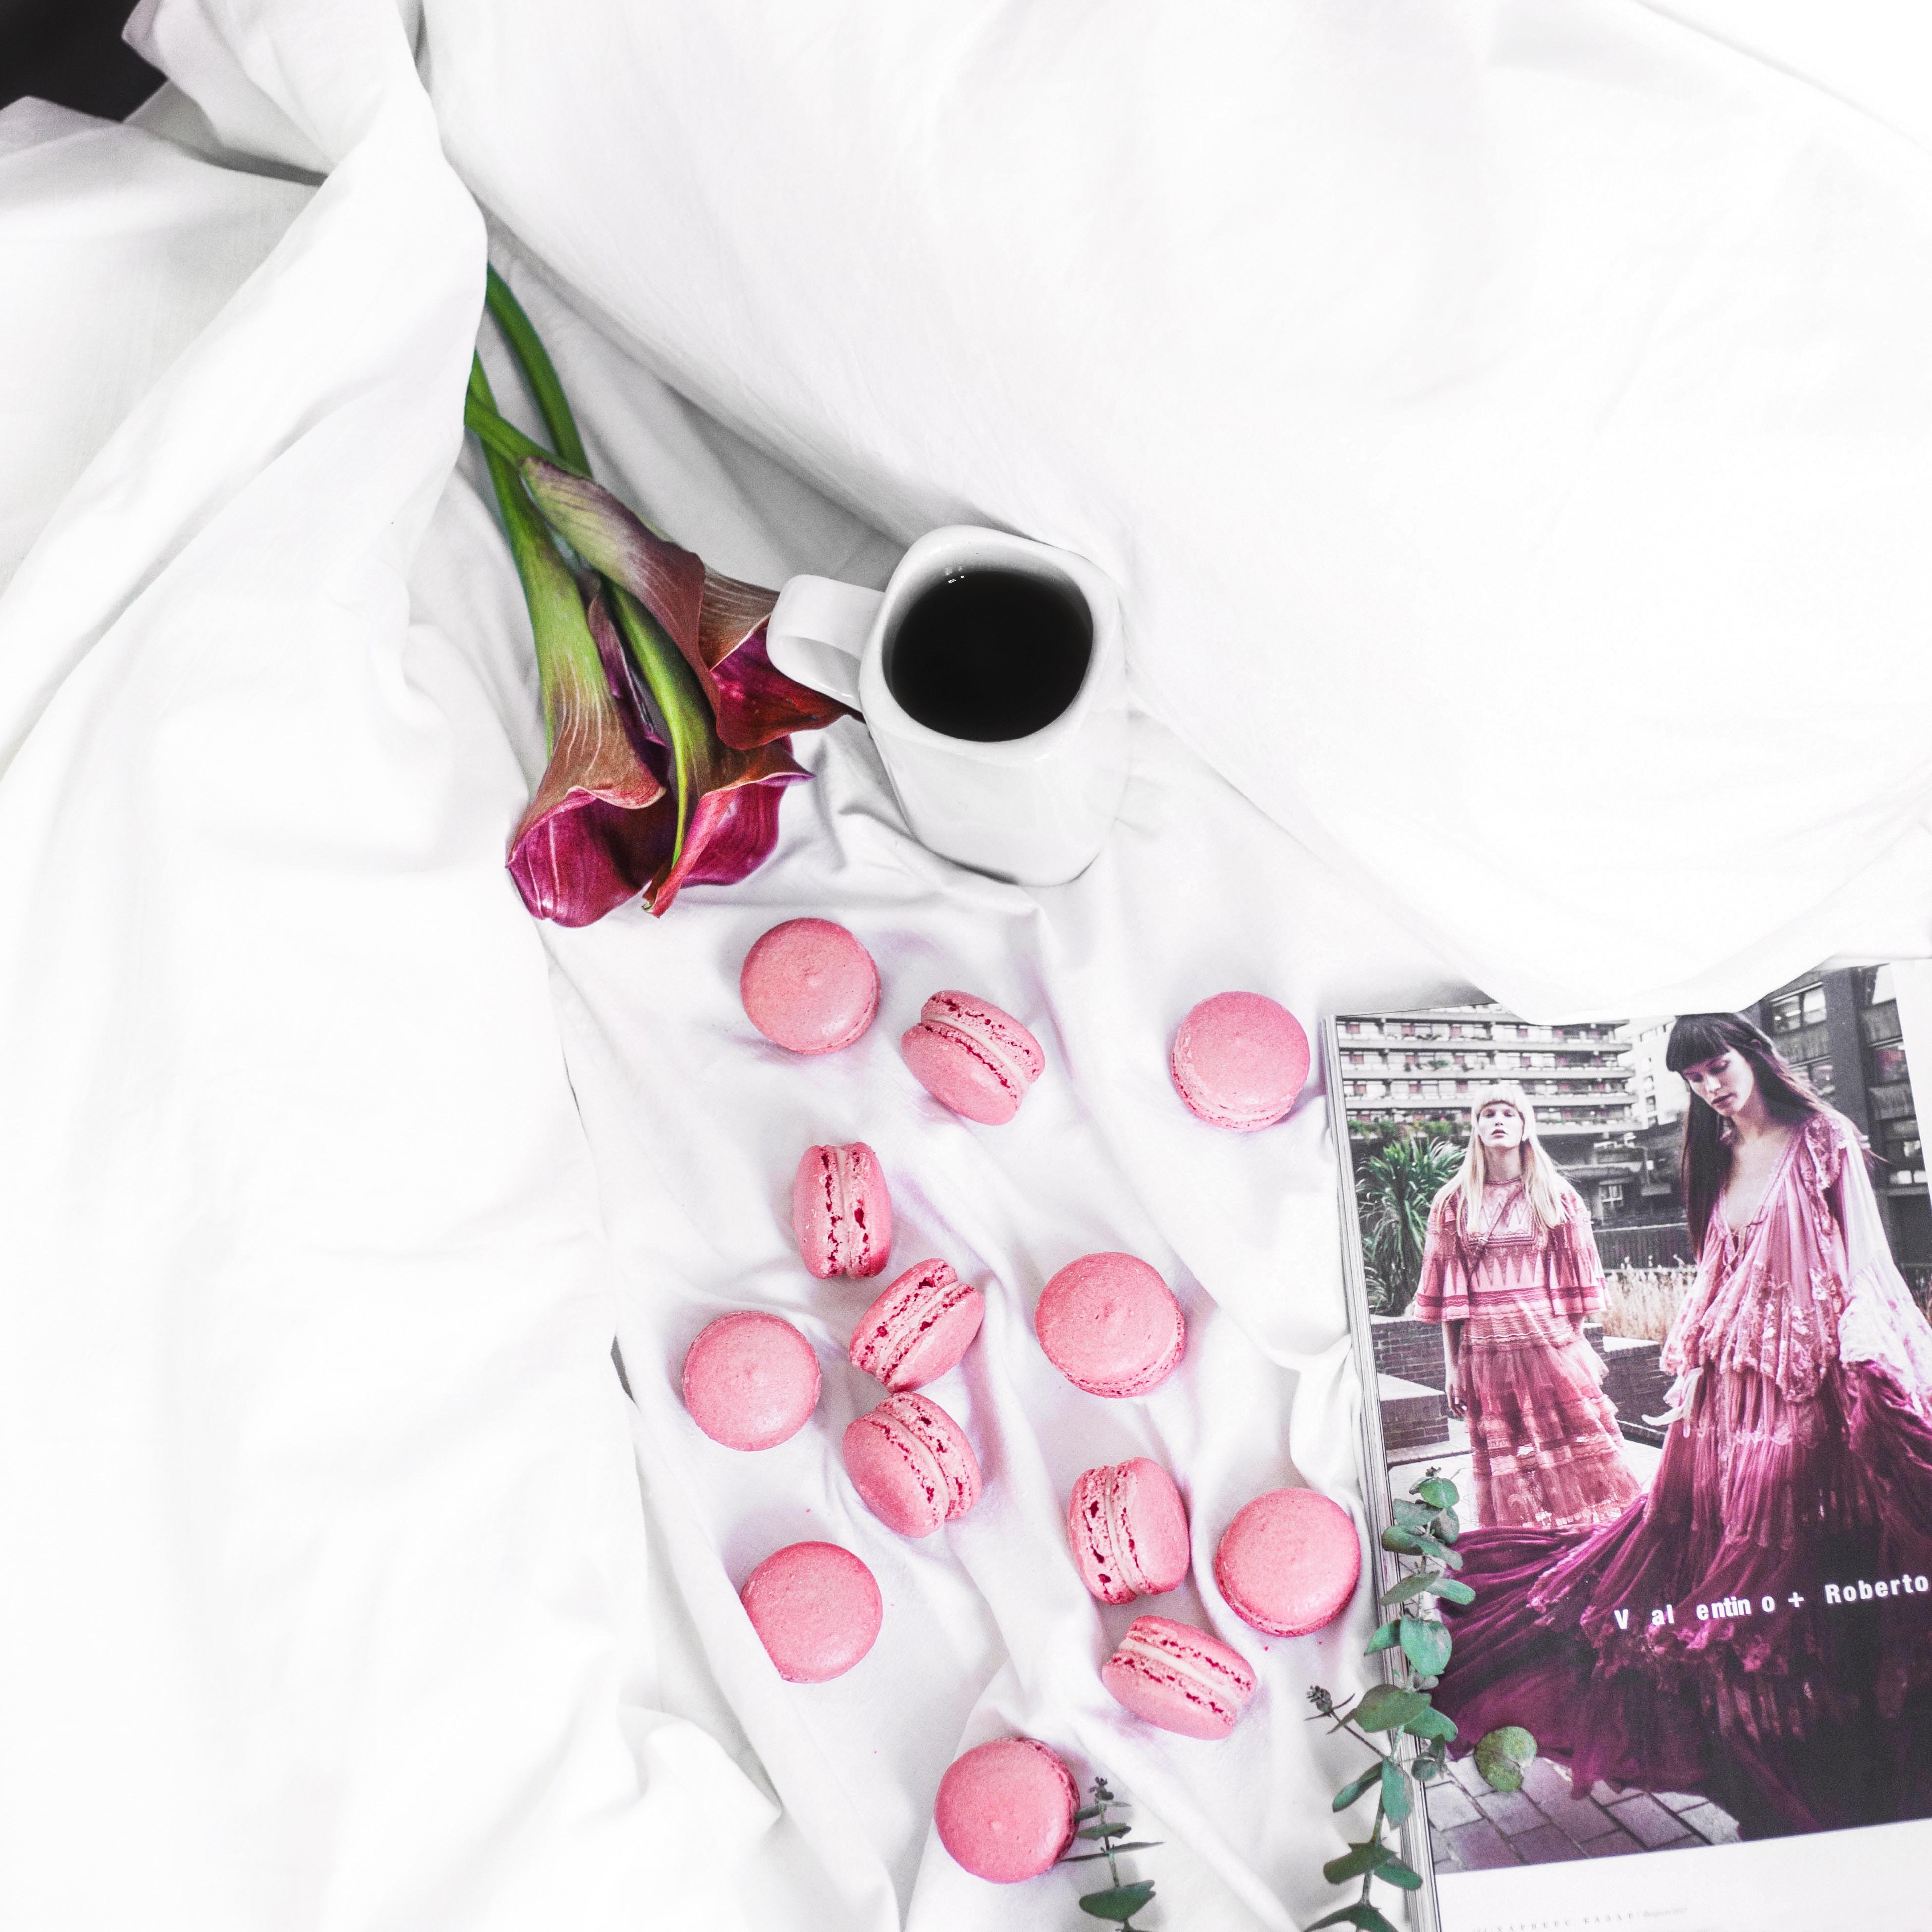 magazine, coffee, flowers, and some pink macarons on a marble counter